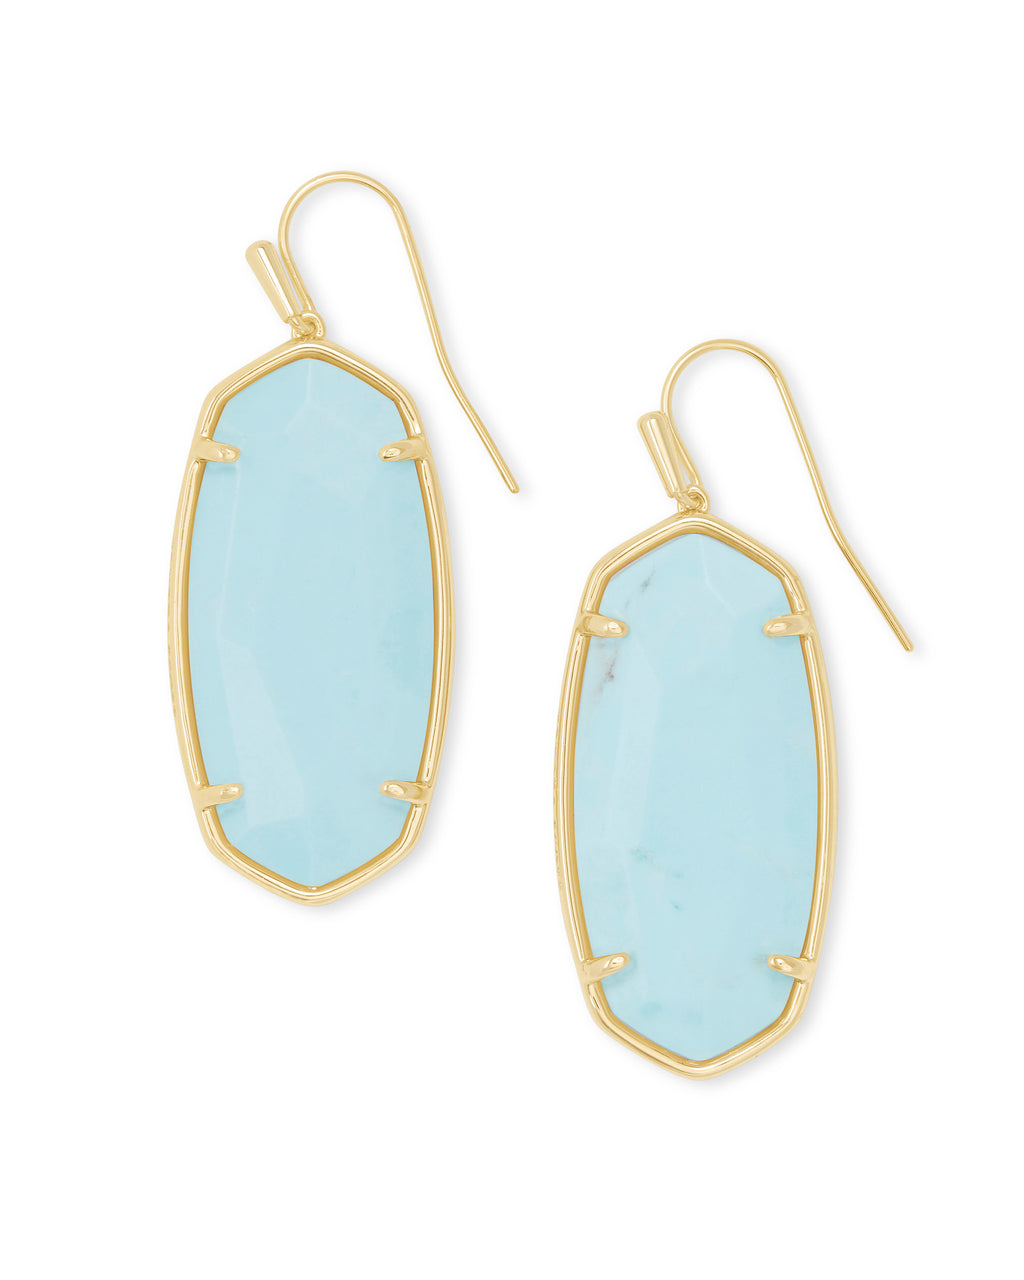 Faceted Elle Drop Earring in Gold Light Blue Magnesite